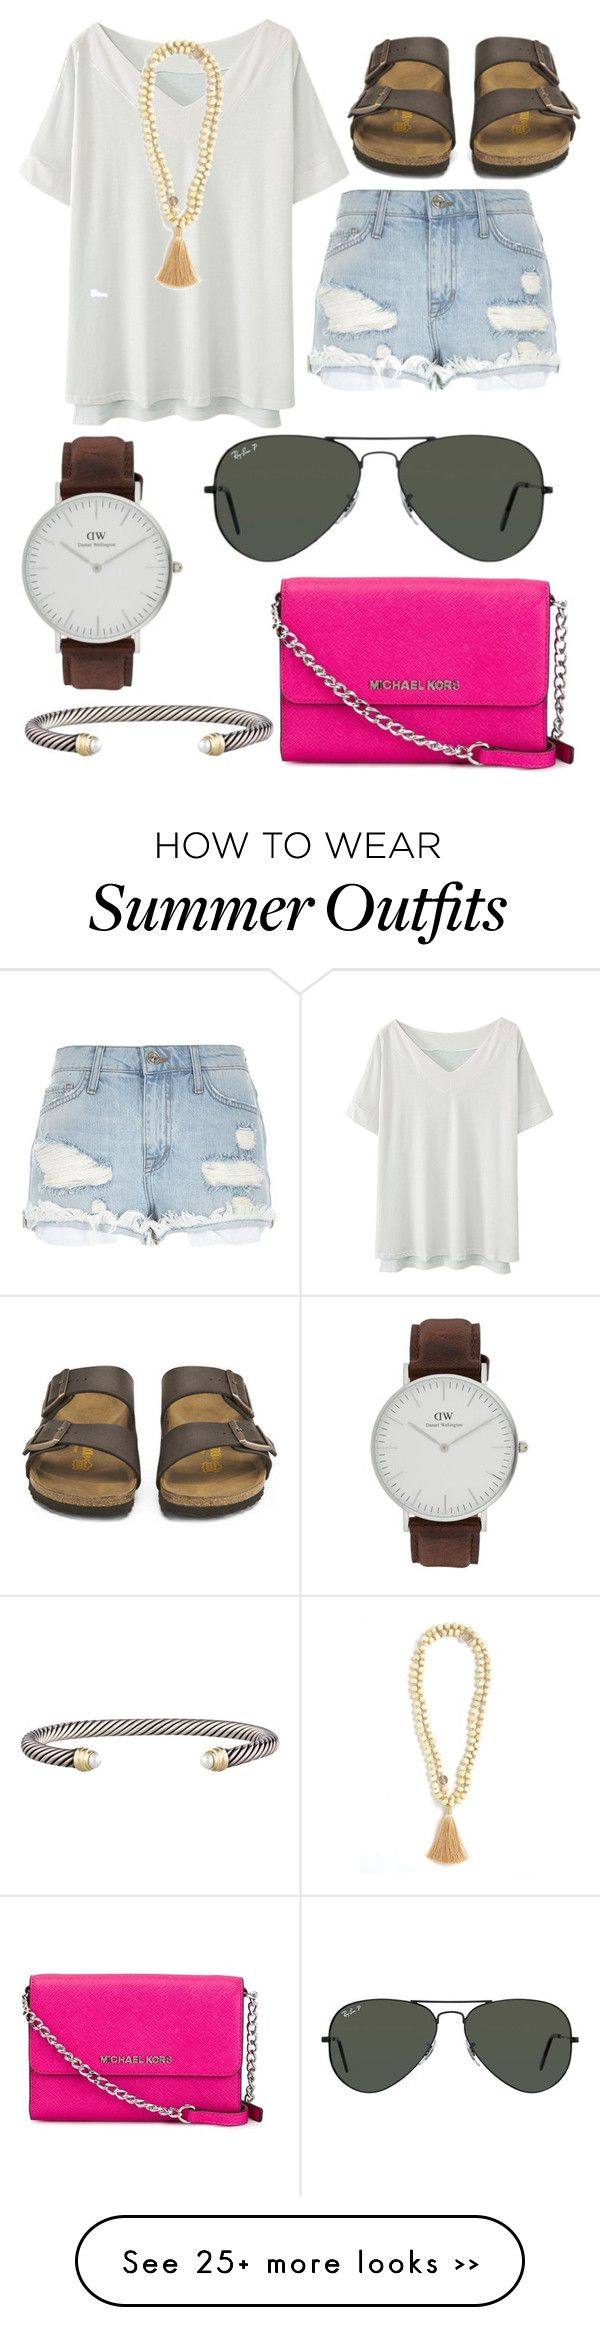 """""""summer outfit"""" by gracecrider12 on Polyvore"""